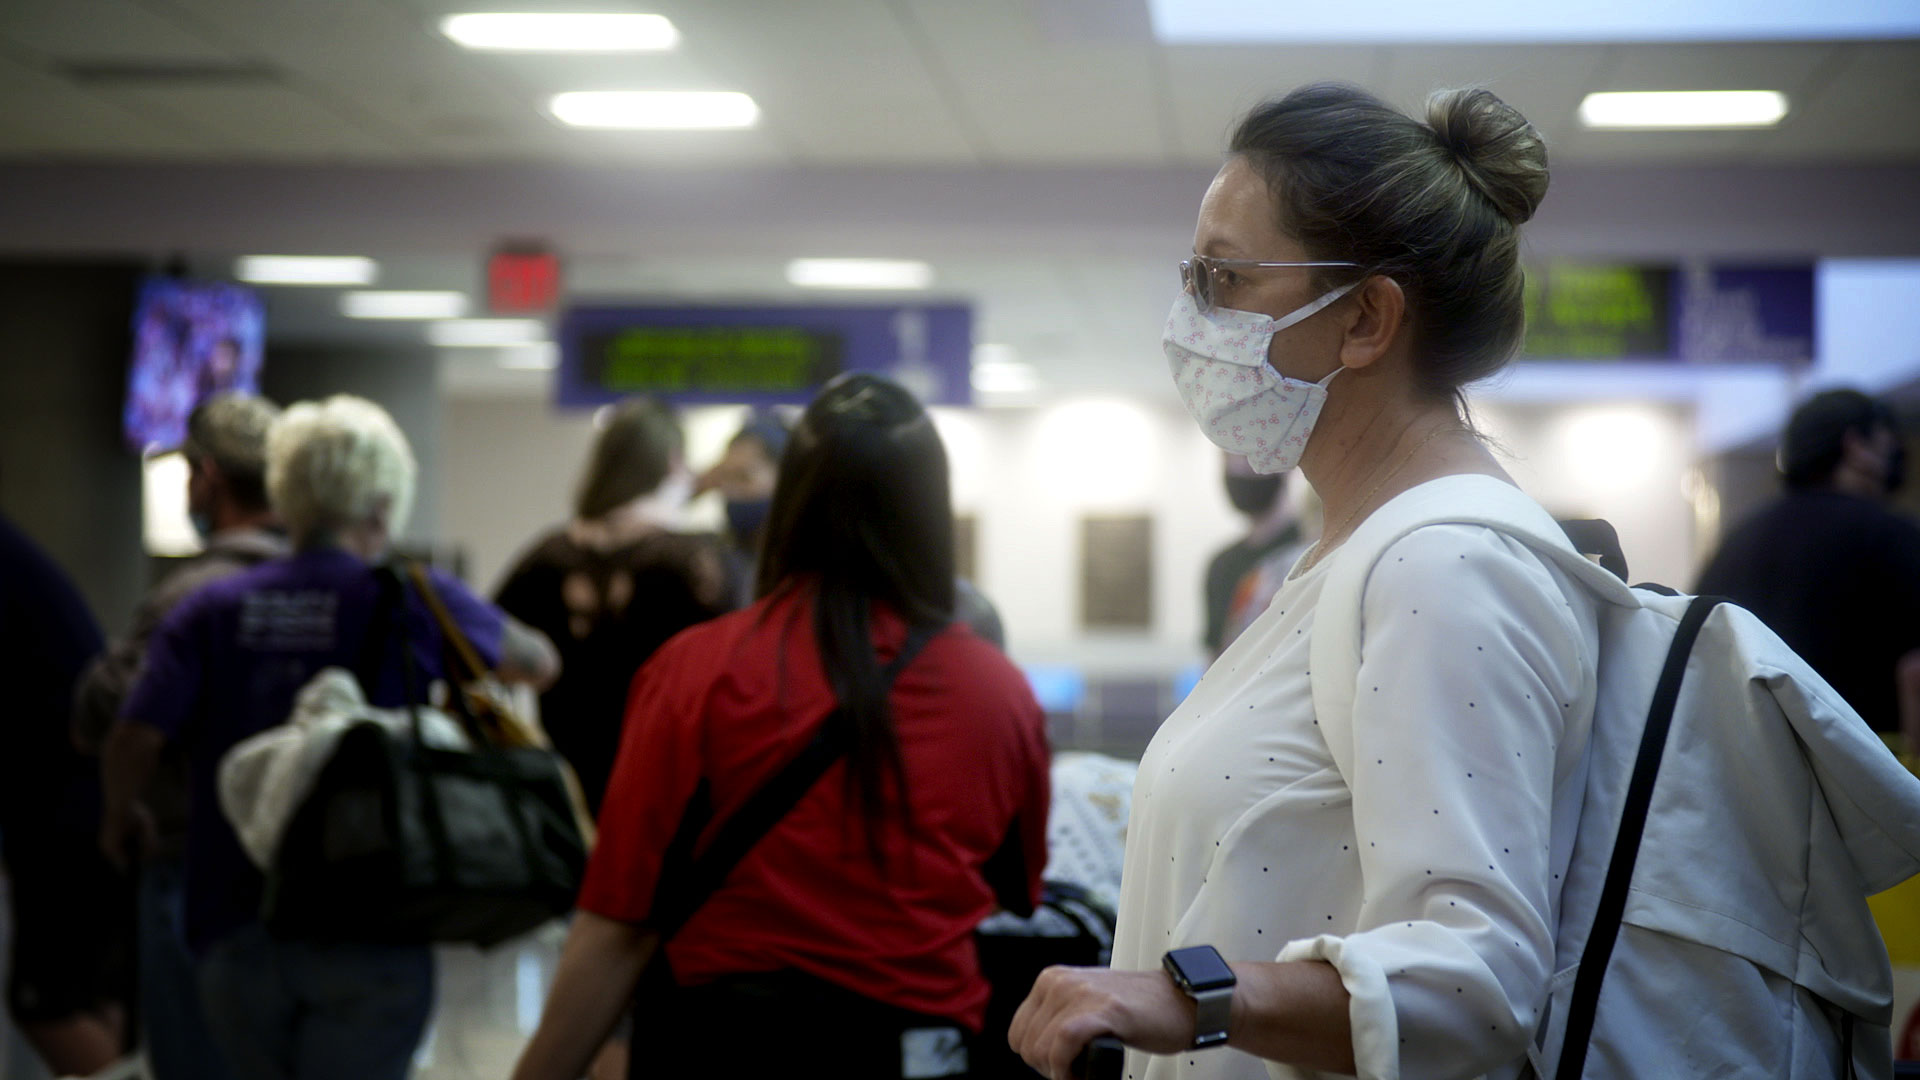 A woman stands with her luggage in the baggage claim area of the Tucson International Airport on August 10, 2020.